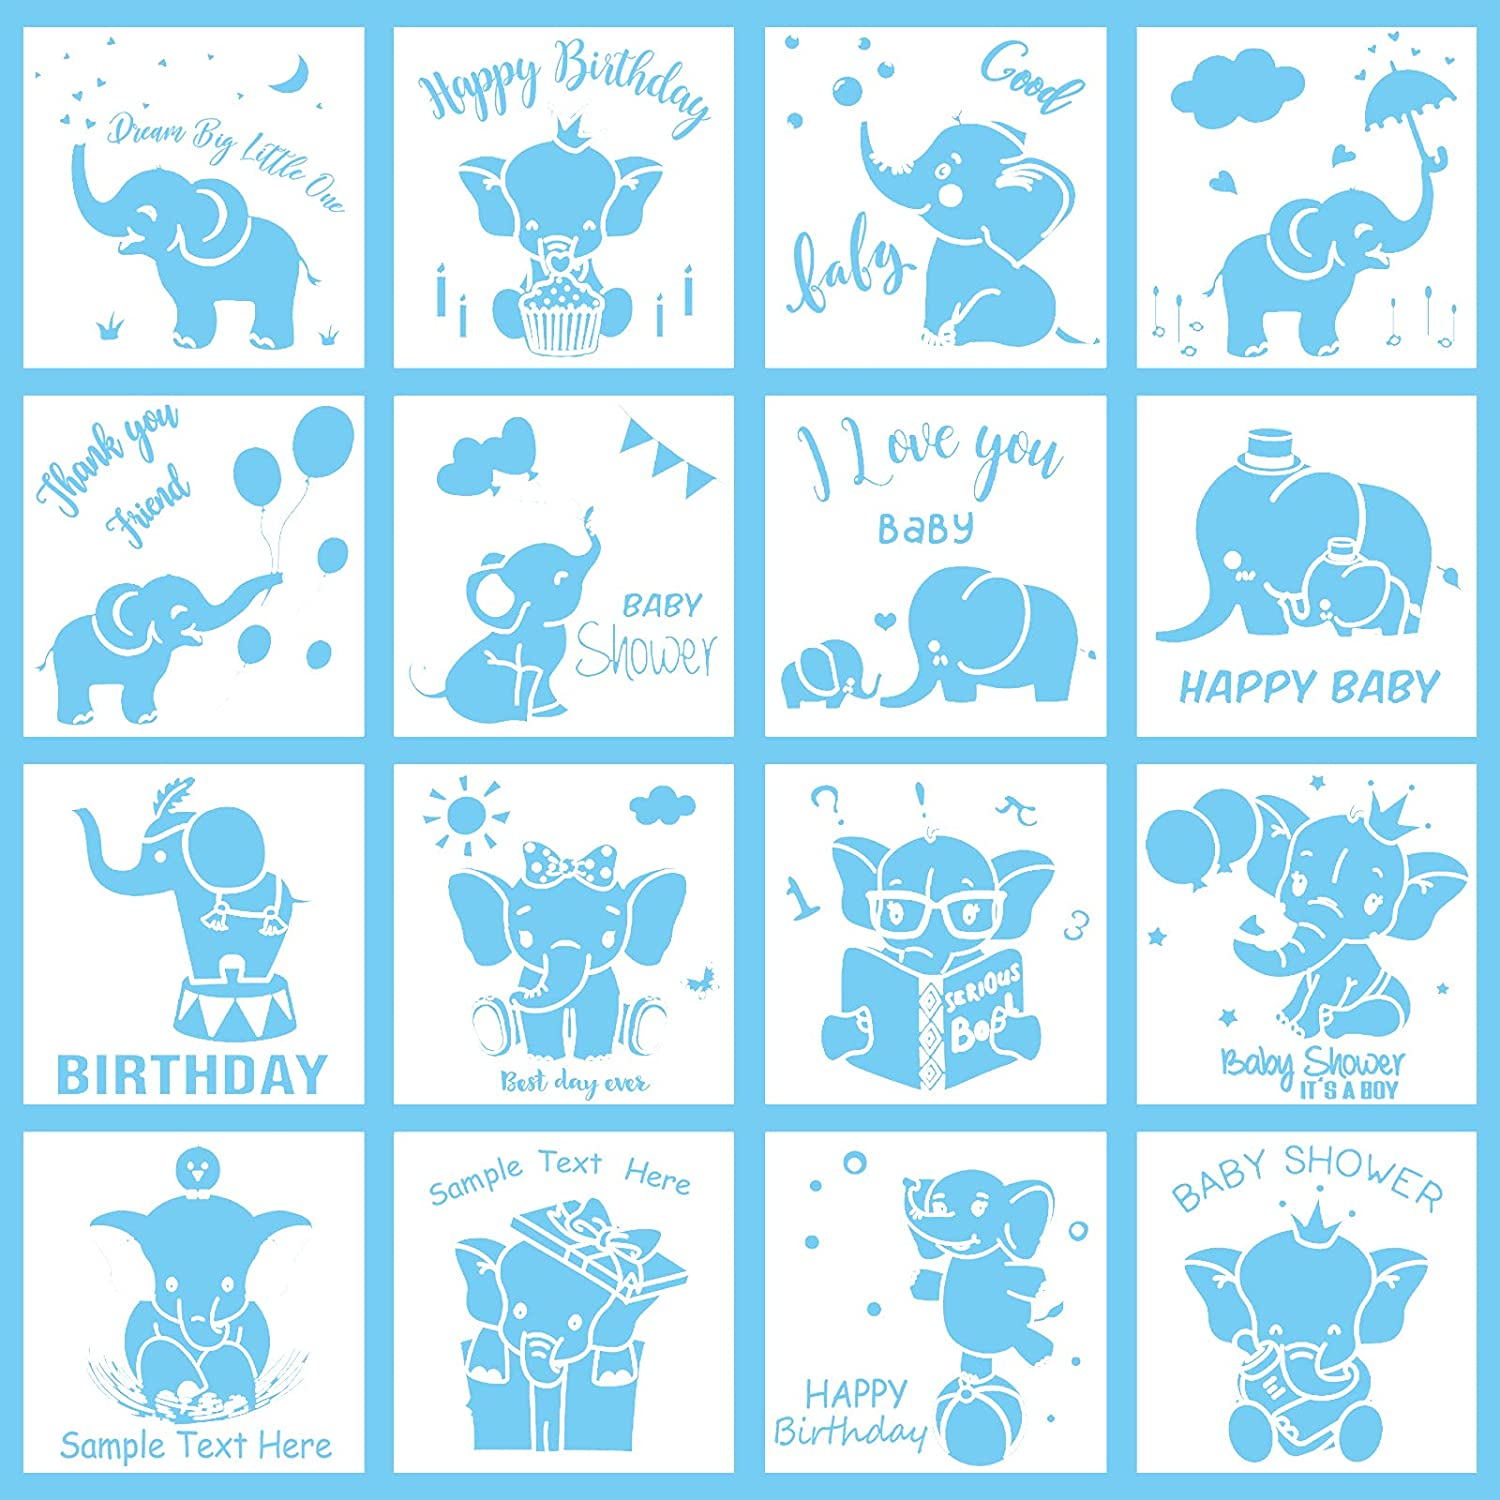 16 Pieces Baby Elephant Stencils Happy Birthday Elephant Painting Stencils Reusable Baby Shower DIY Stencils for Wall Tile Fabric Furniture Templates 16 Styles 6.3 x 6.3 Inch